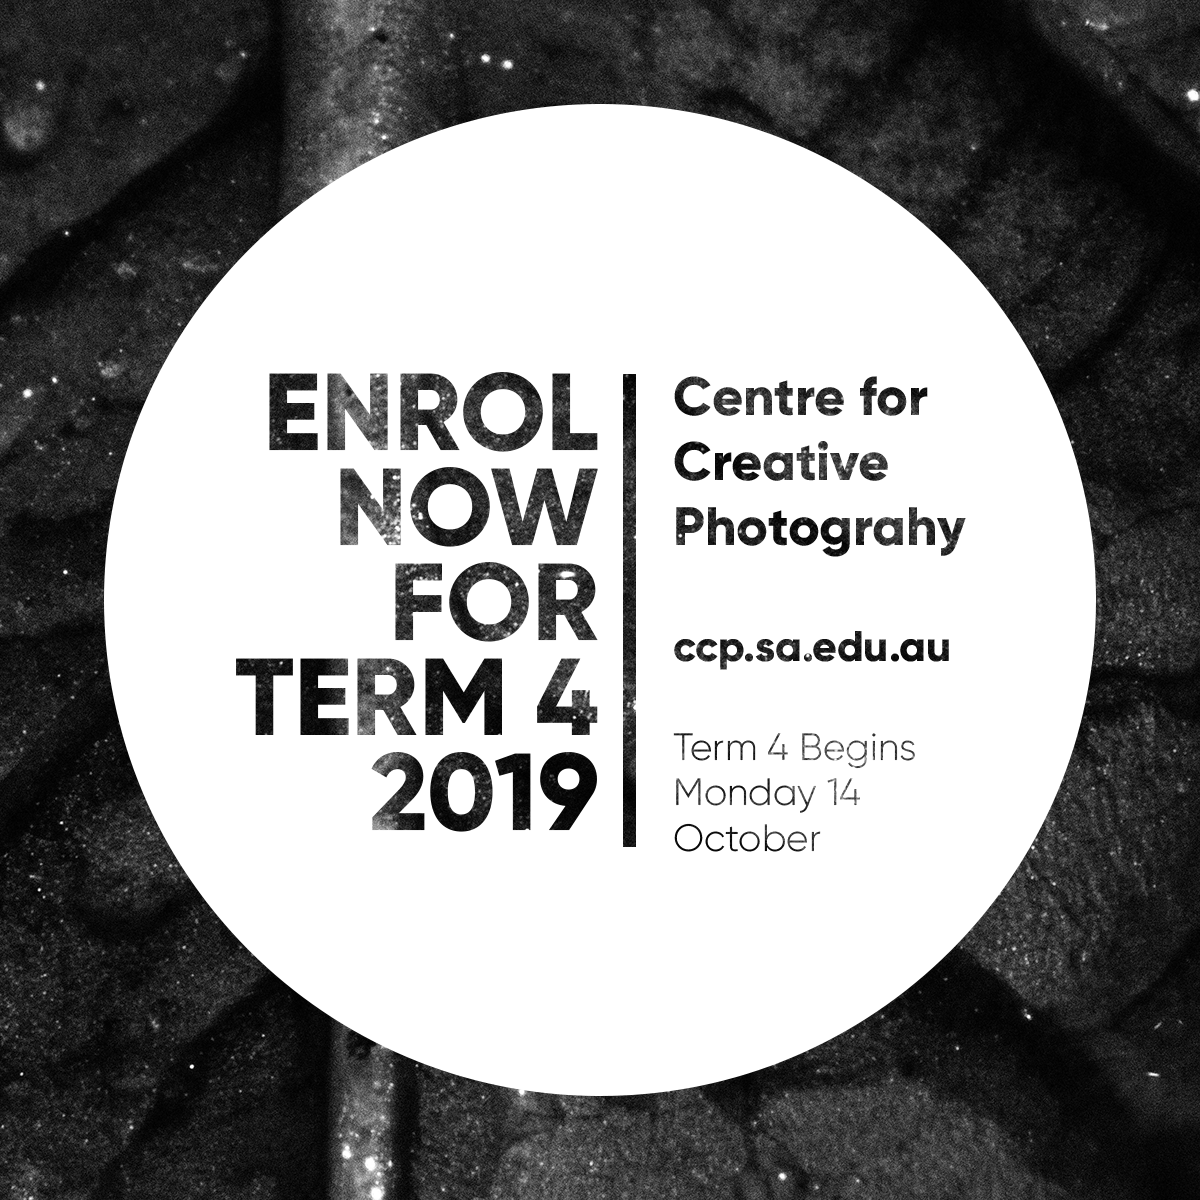 enrol-now-for-term-4-2019